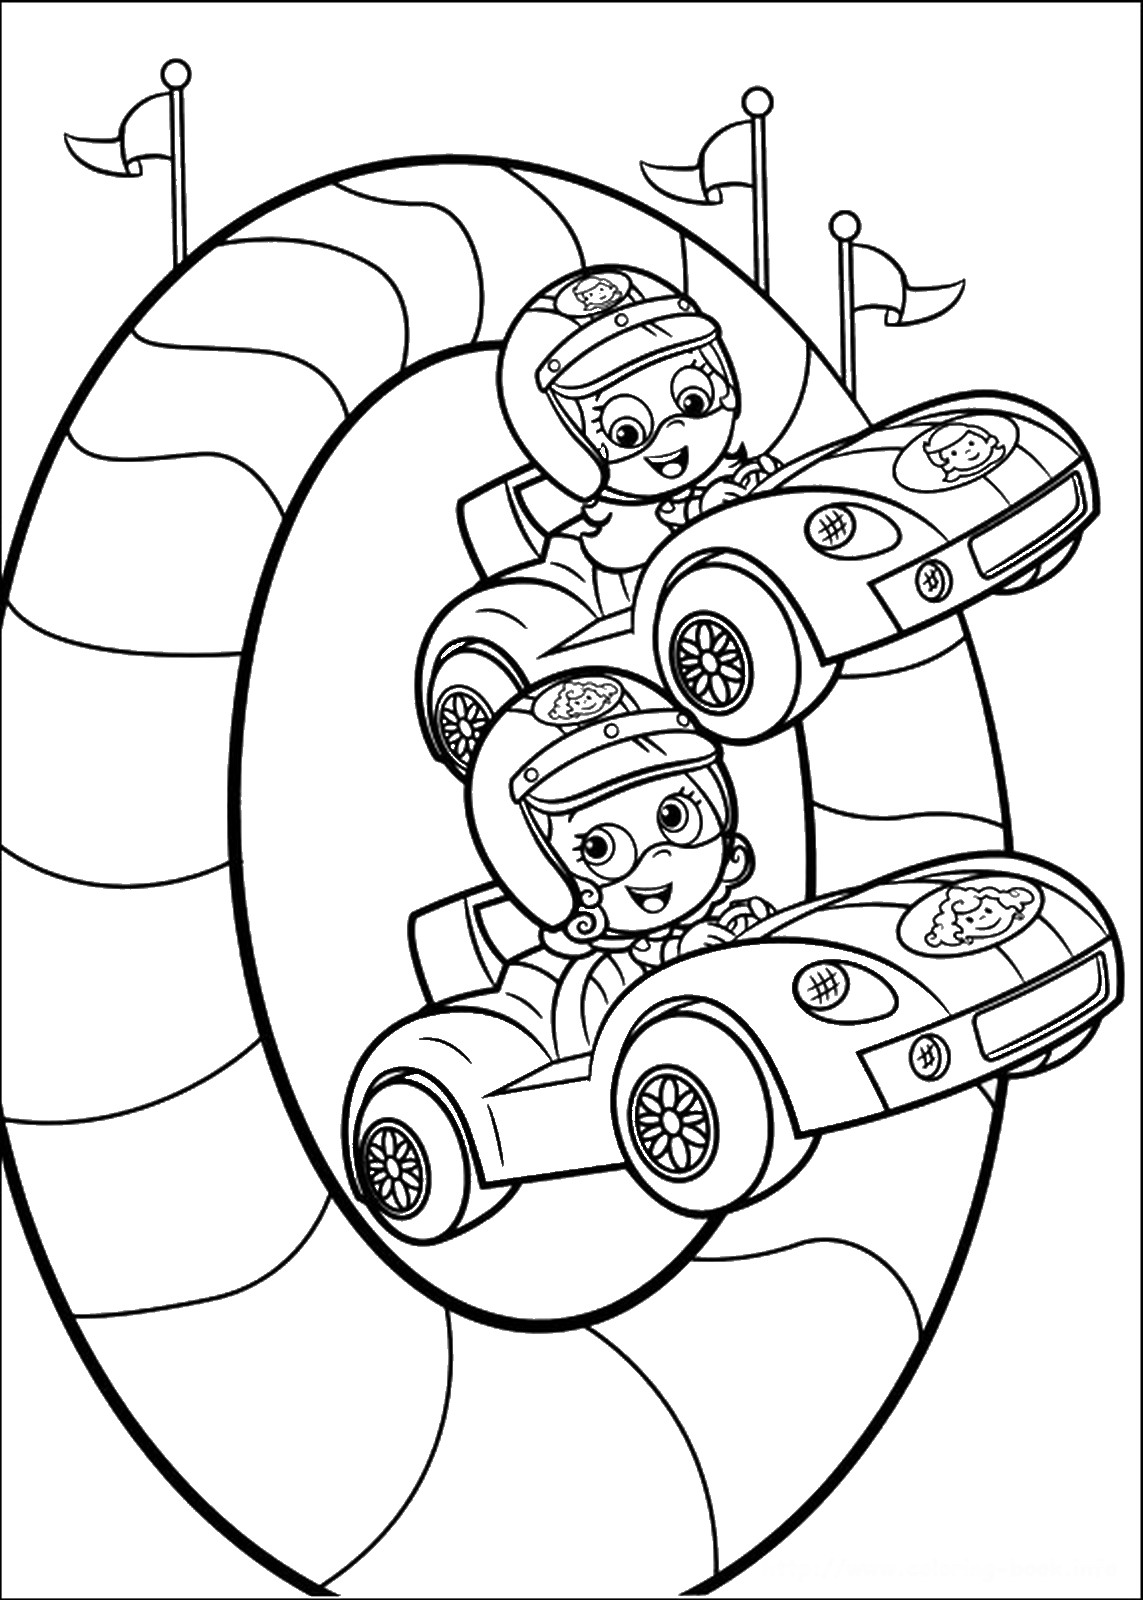 Bubble Guppies Coloring Pages Best Coloring Pages For Kids Printing Color Pages